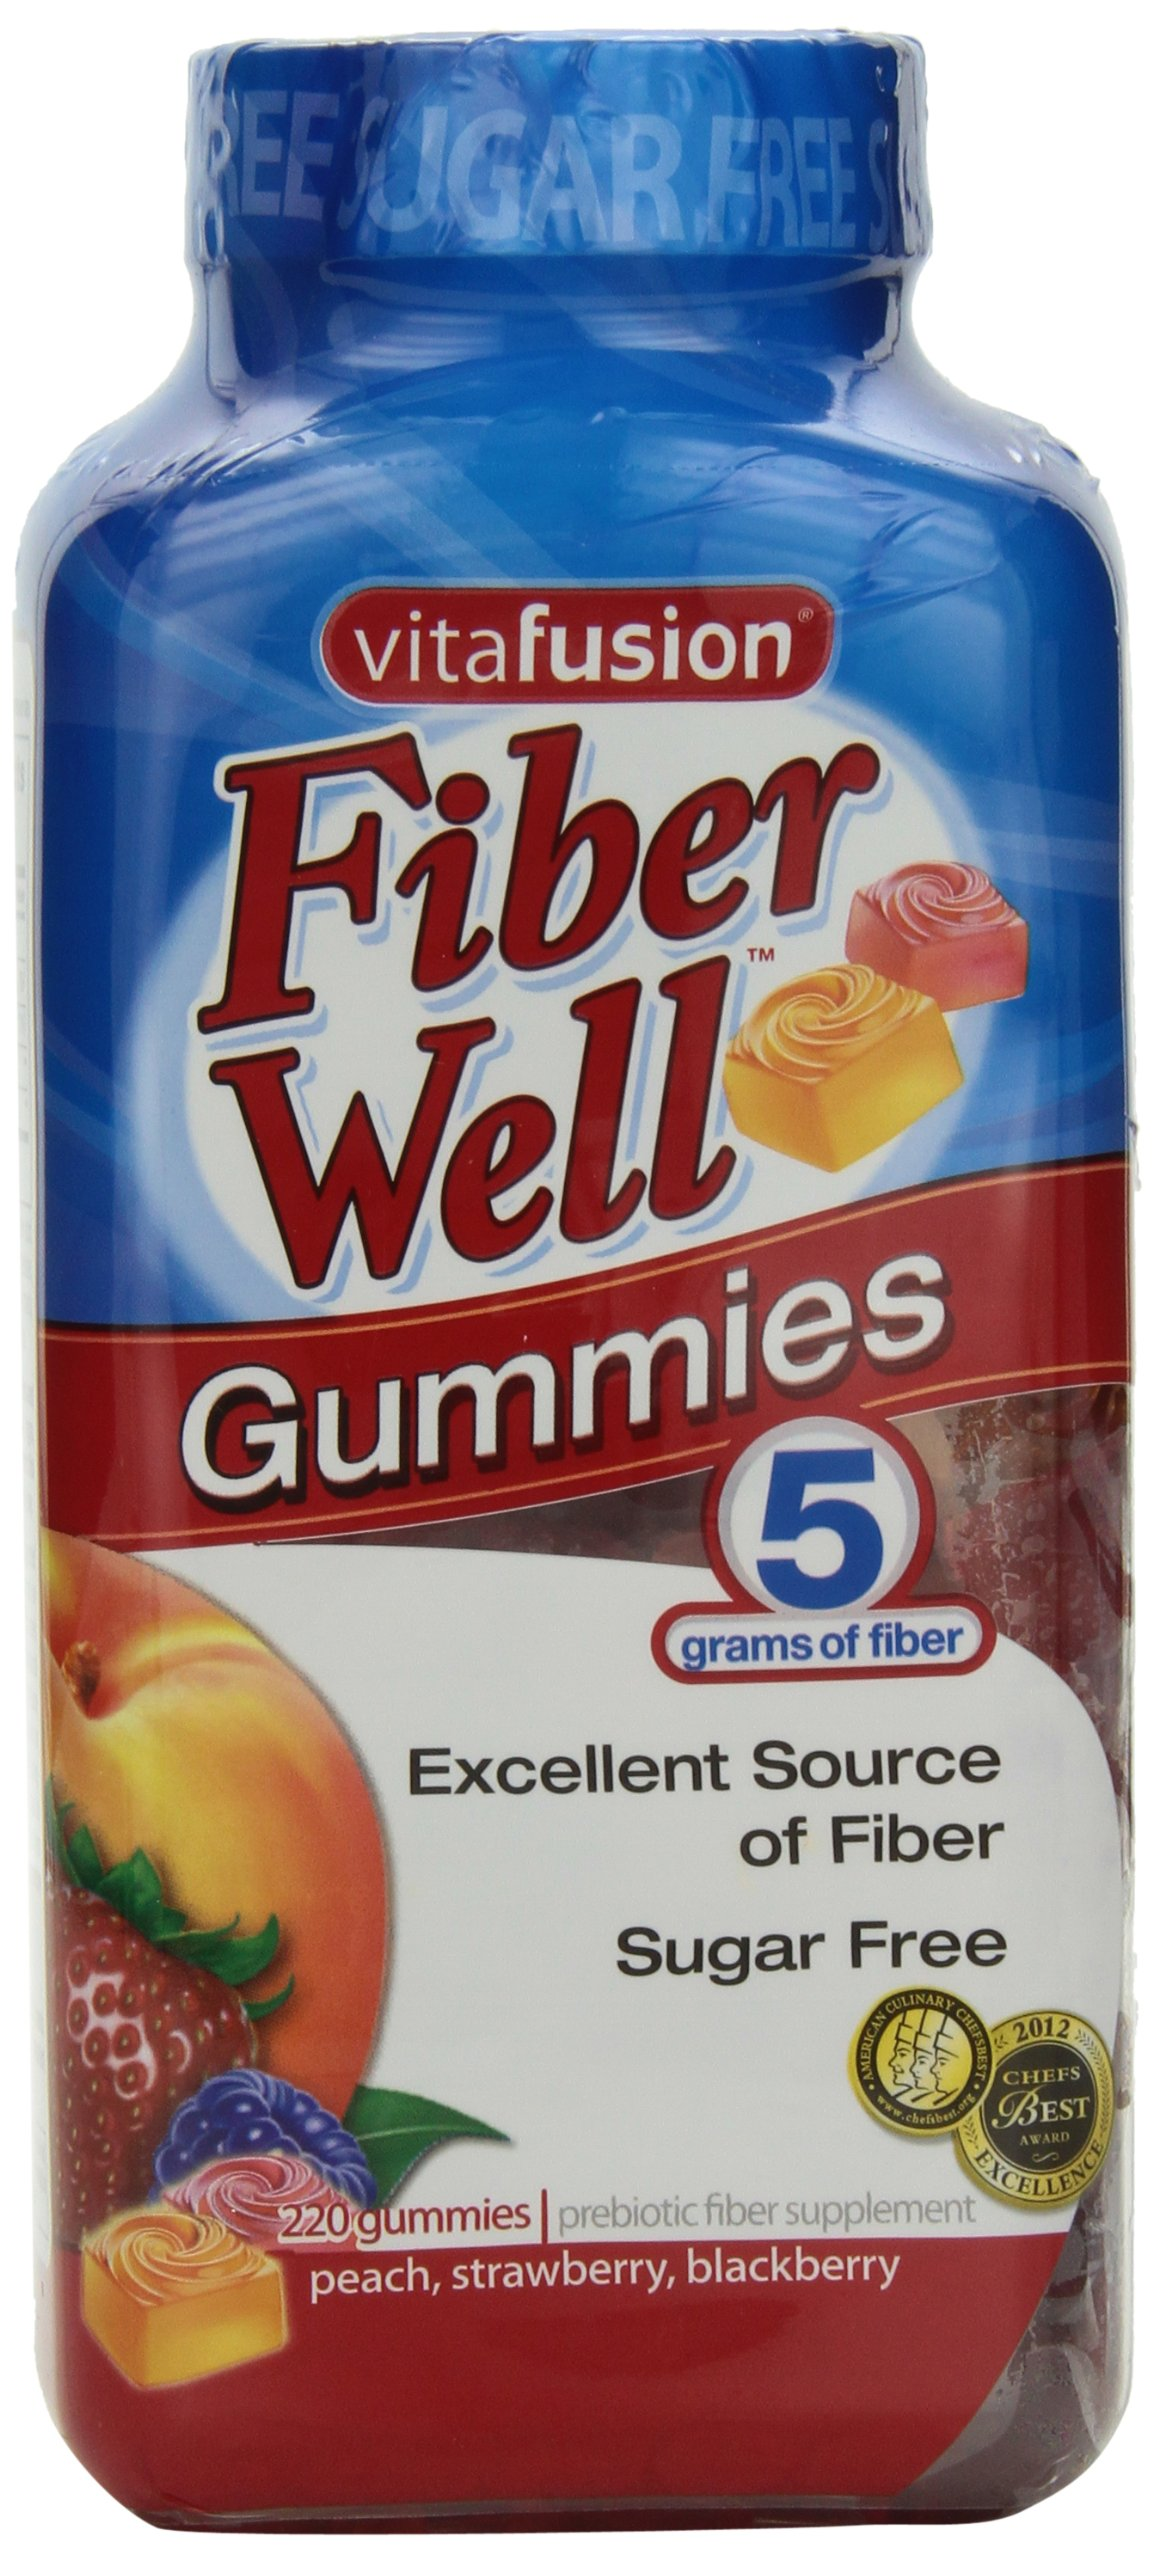 vitafusion Fiber Gummies, 220 Count,5g of fiber, ''Sugar Free'' by Vitafusion